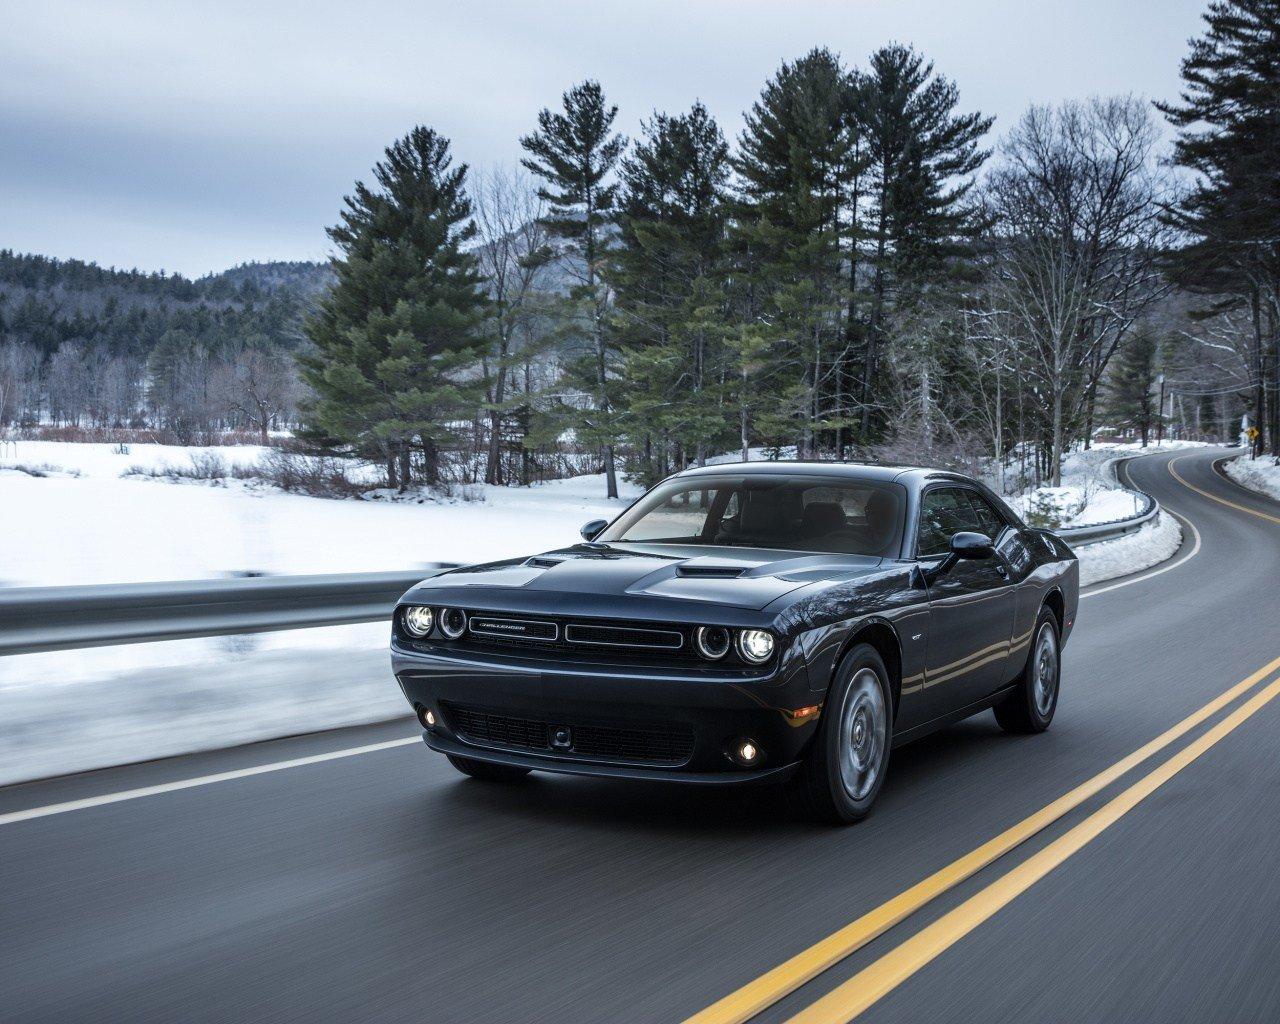 New Download 1280X1024 Wallpaper Black Dodge Challenger Muscle On This Month